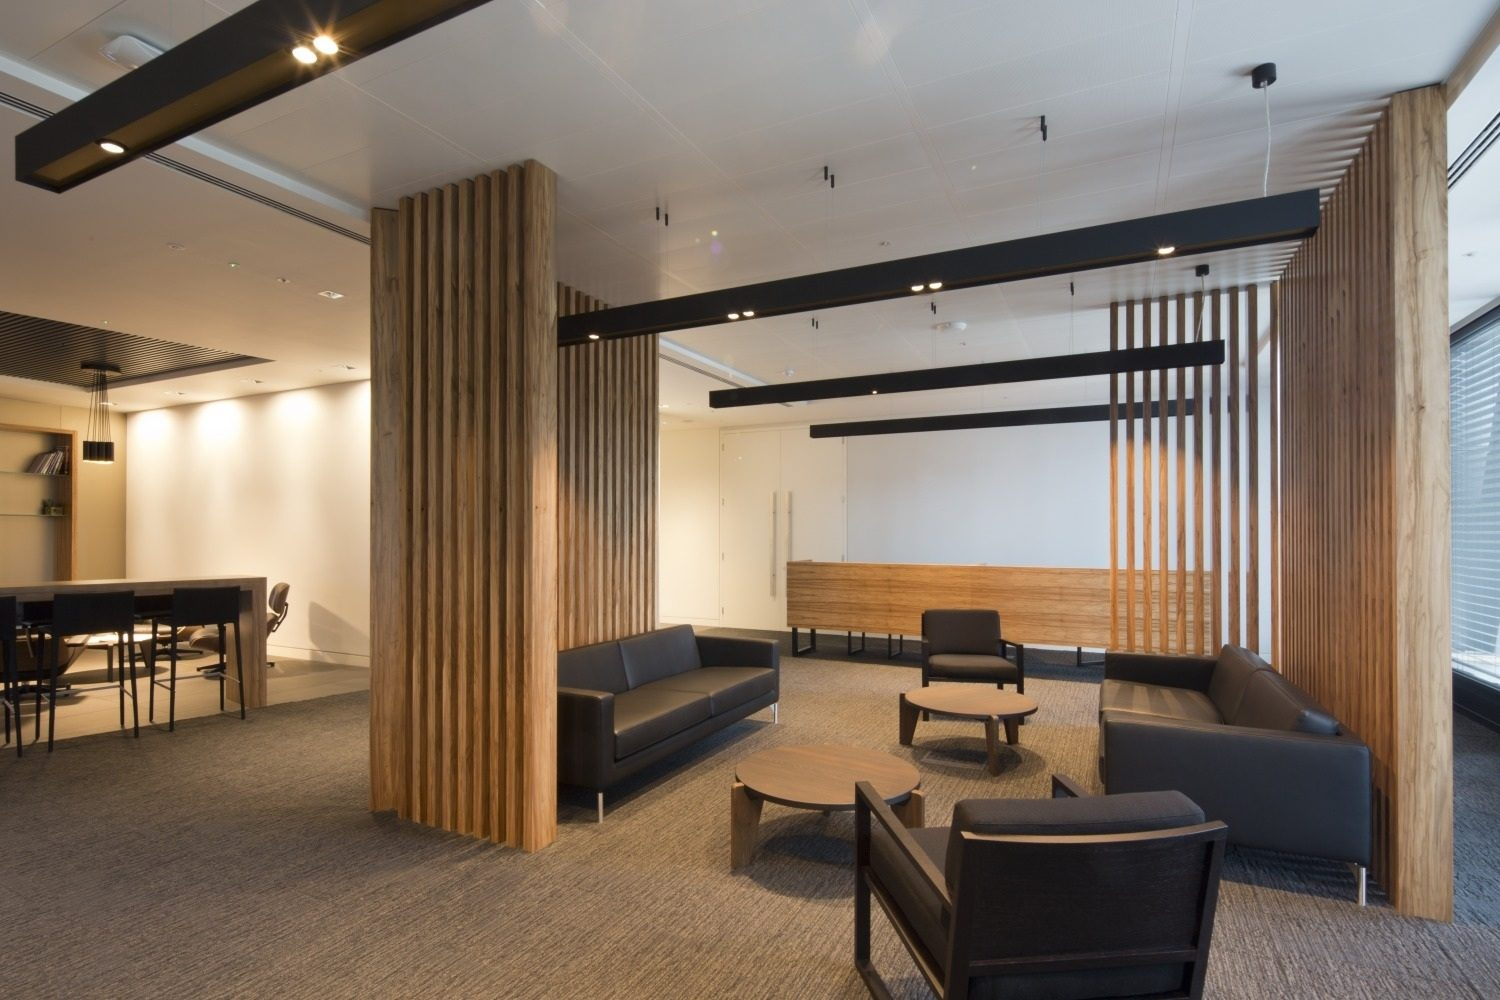 Aon office interior by Overbury